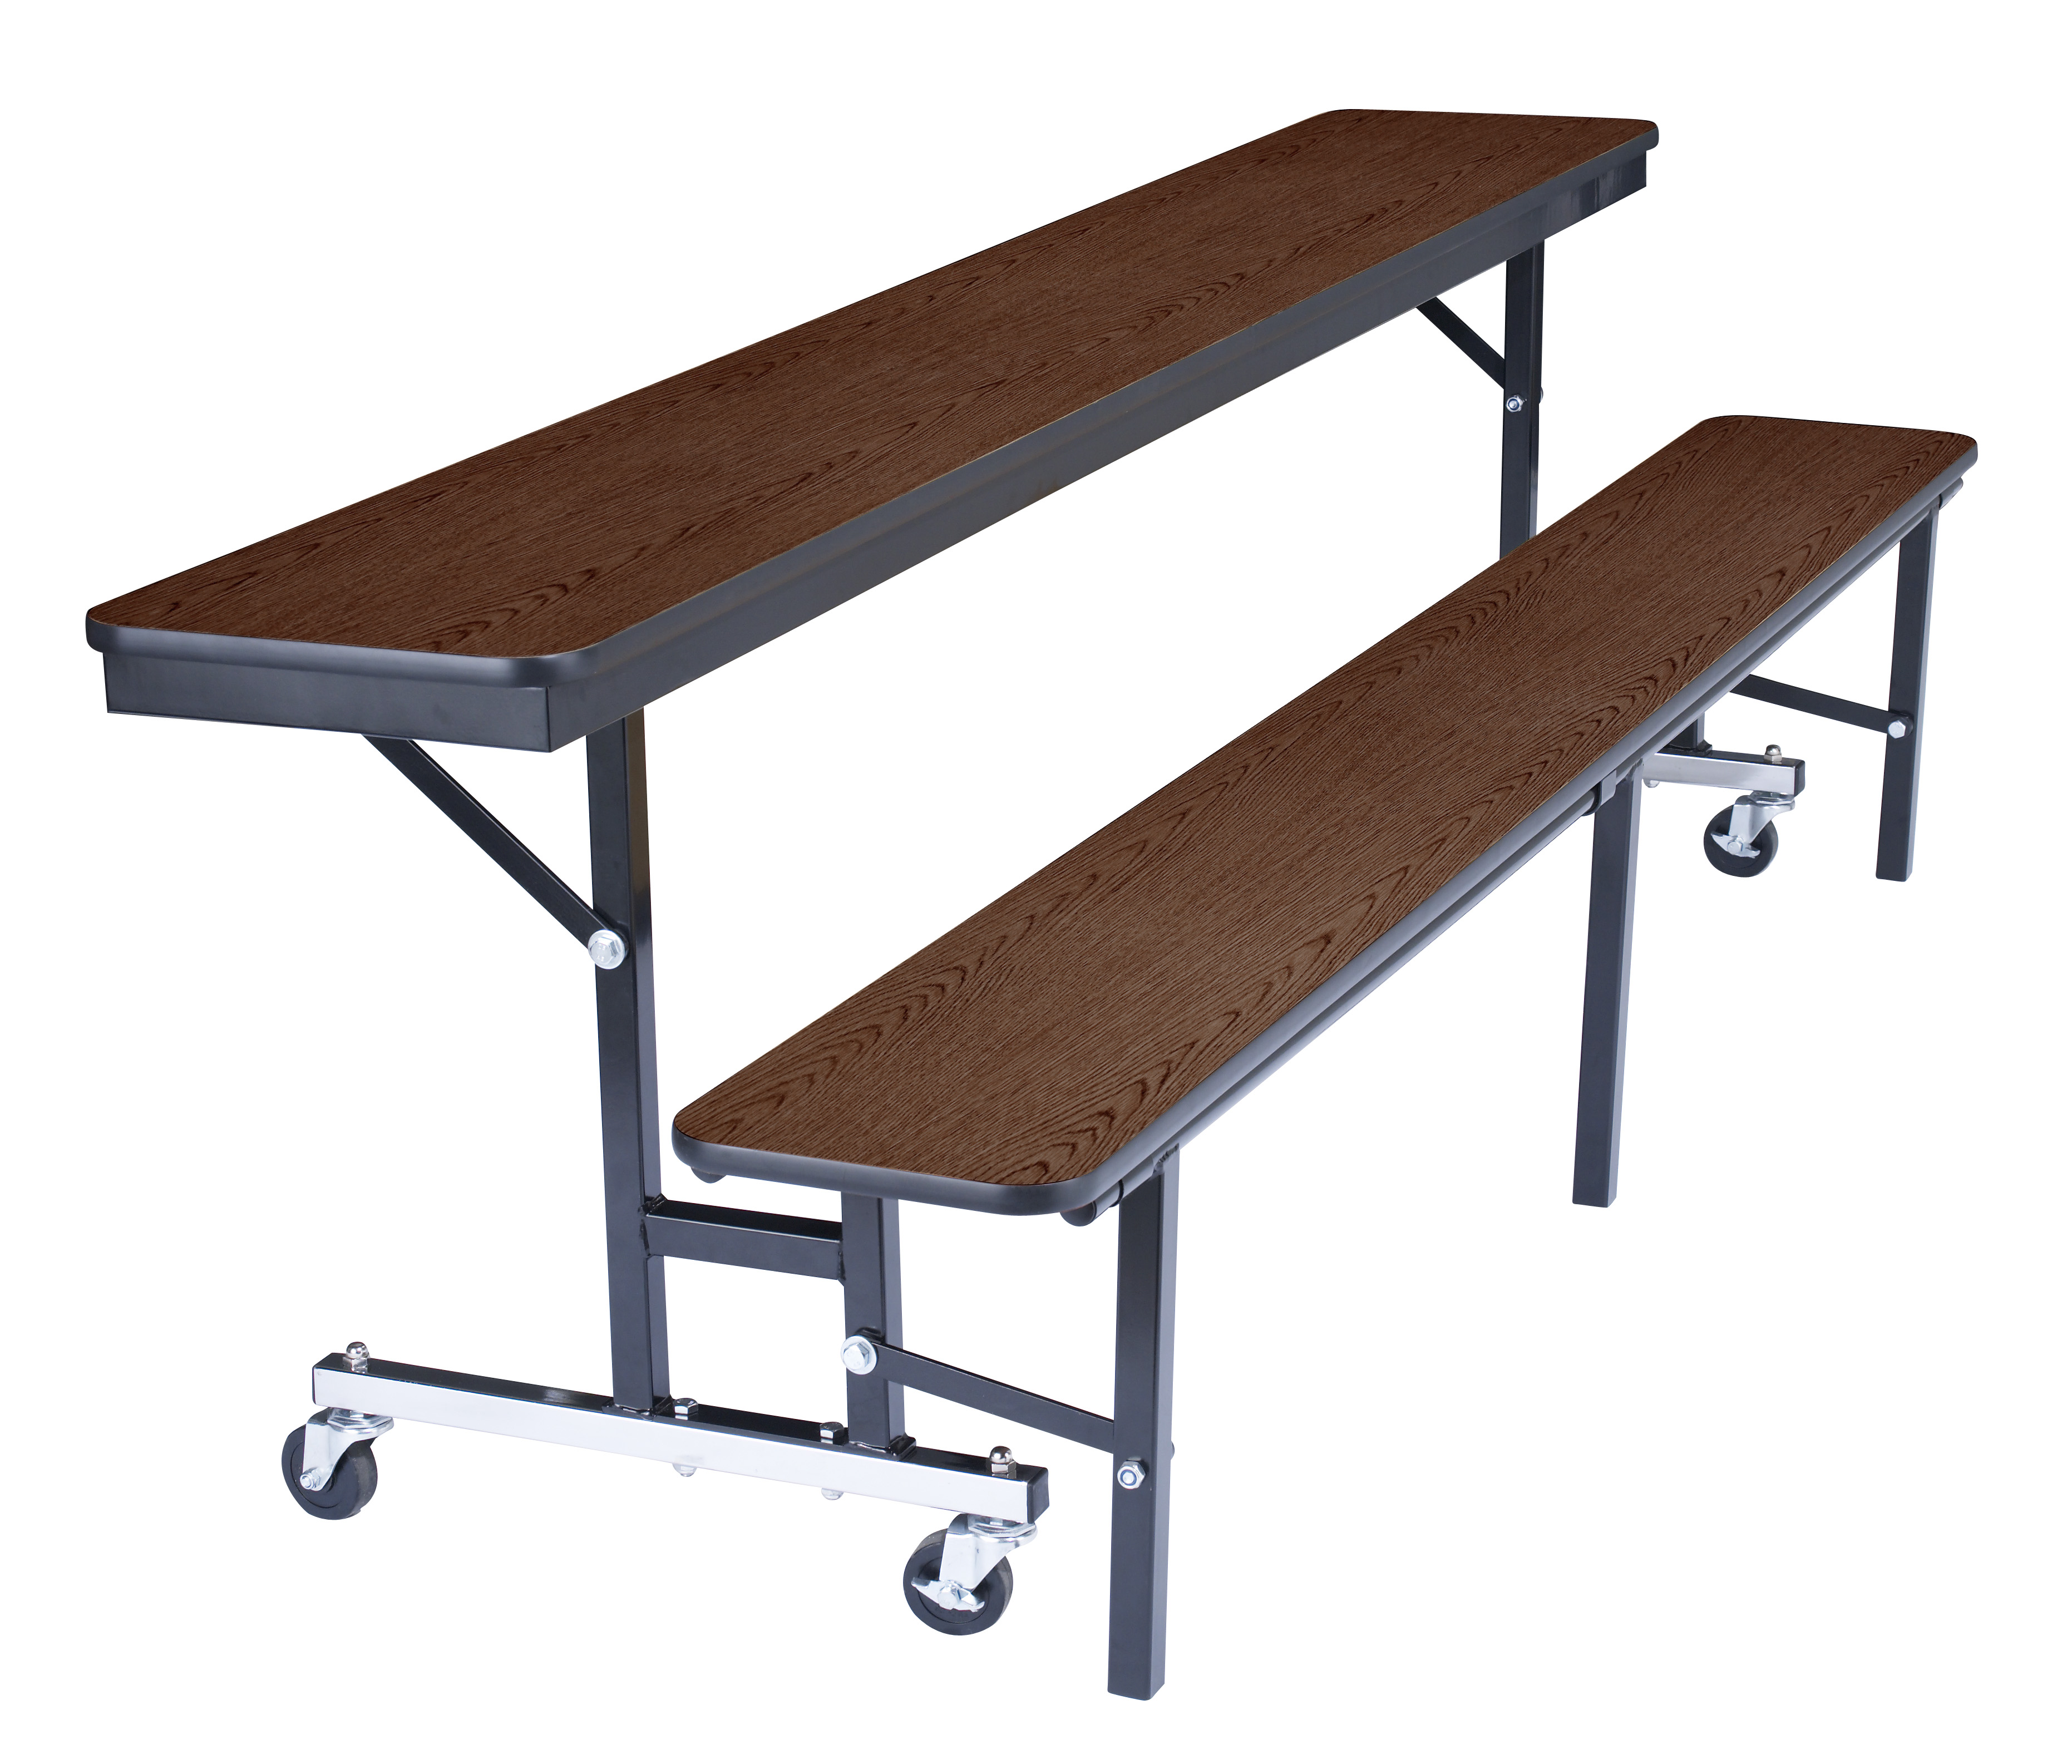 NPS 7' Rectangular Cafeteria Convertible Bench Table - Plywood Core